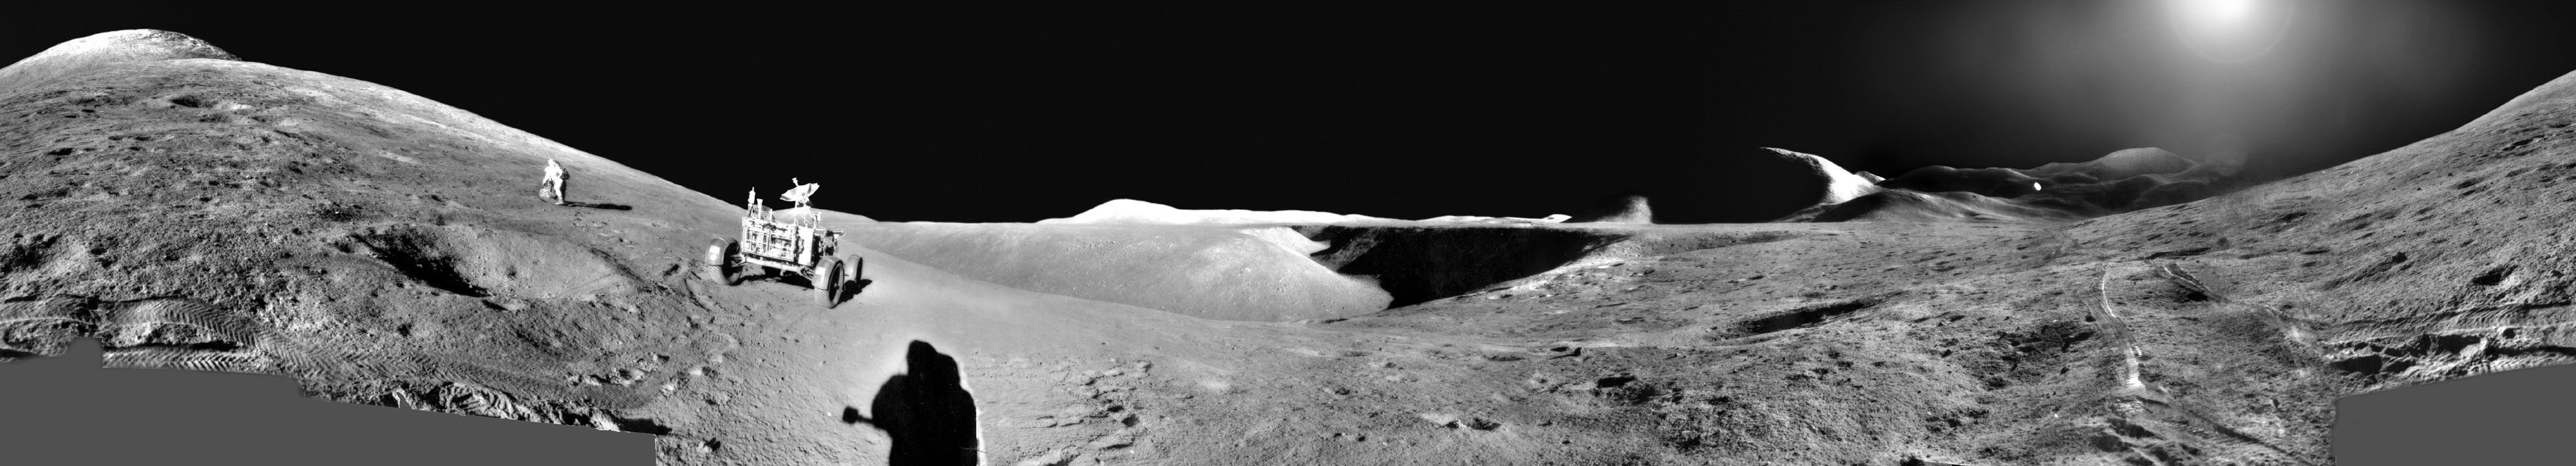 Des astronautes explorent la Lune : panorama d\'Apollo 15